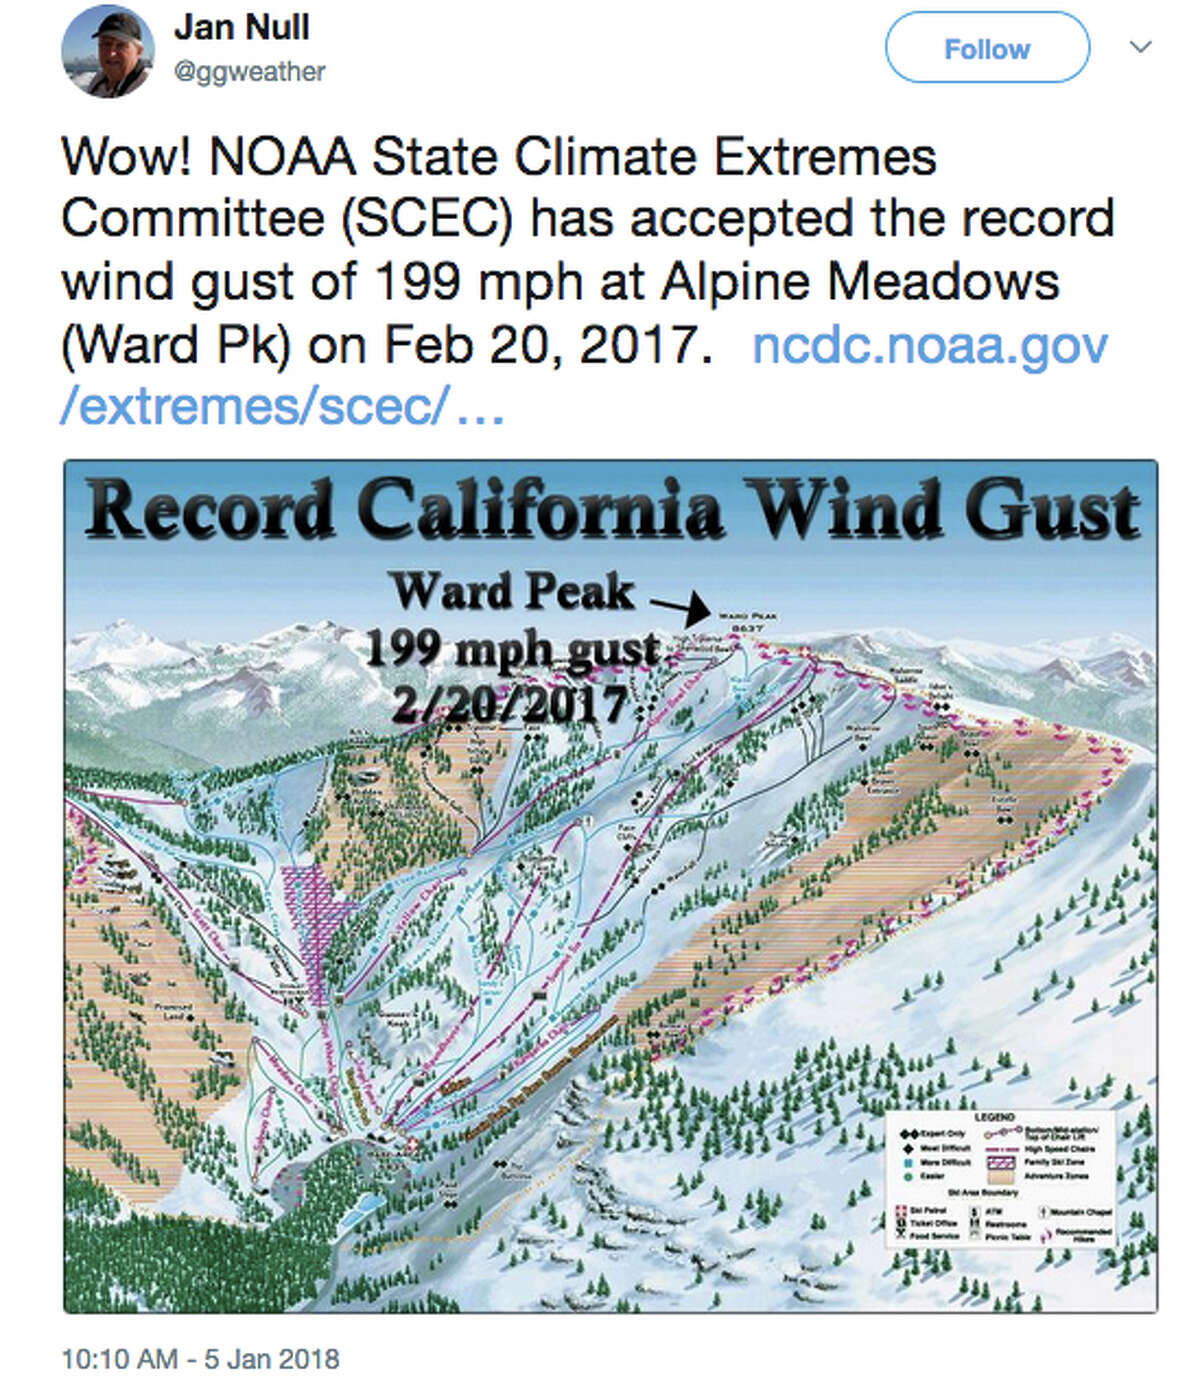 Jan Null of Golden Gate Weather tweeted about the record wind gust. Ward Peak recorded a wind gust of 199 mph on February 20, 2017.